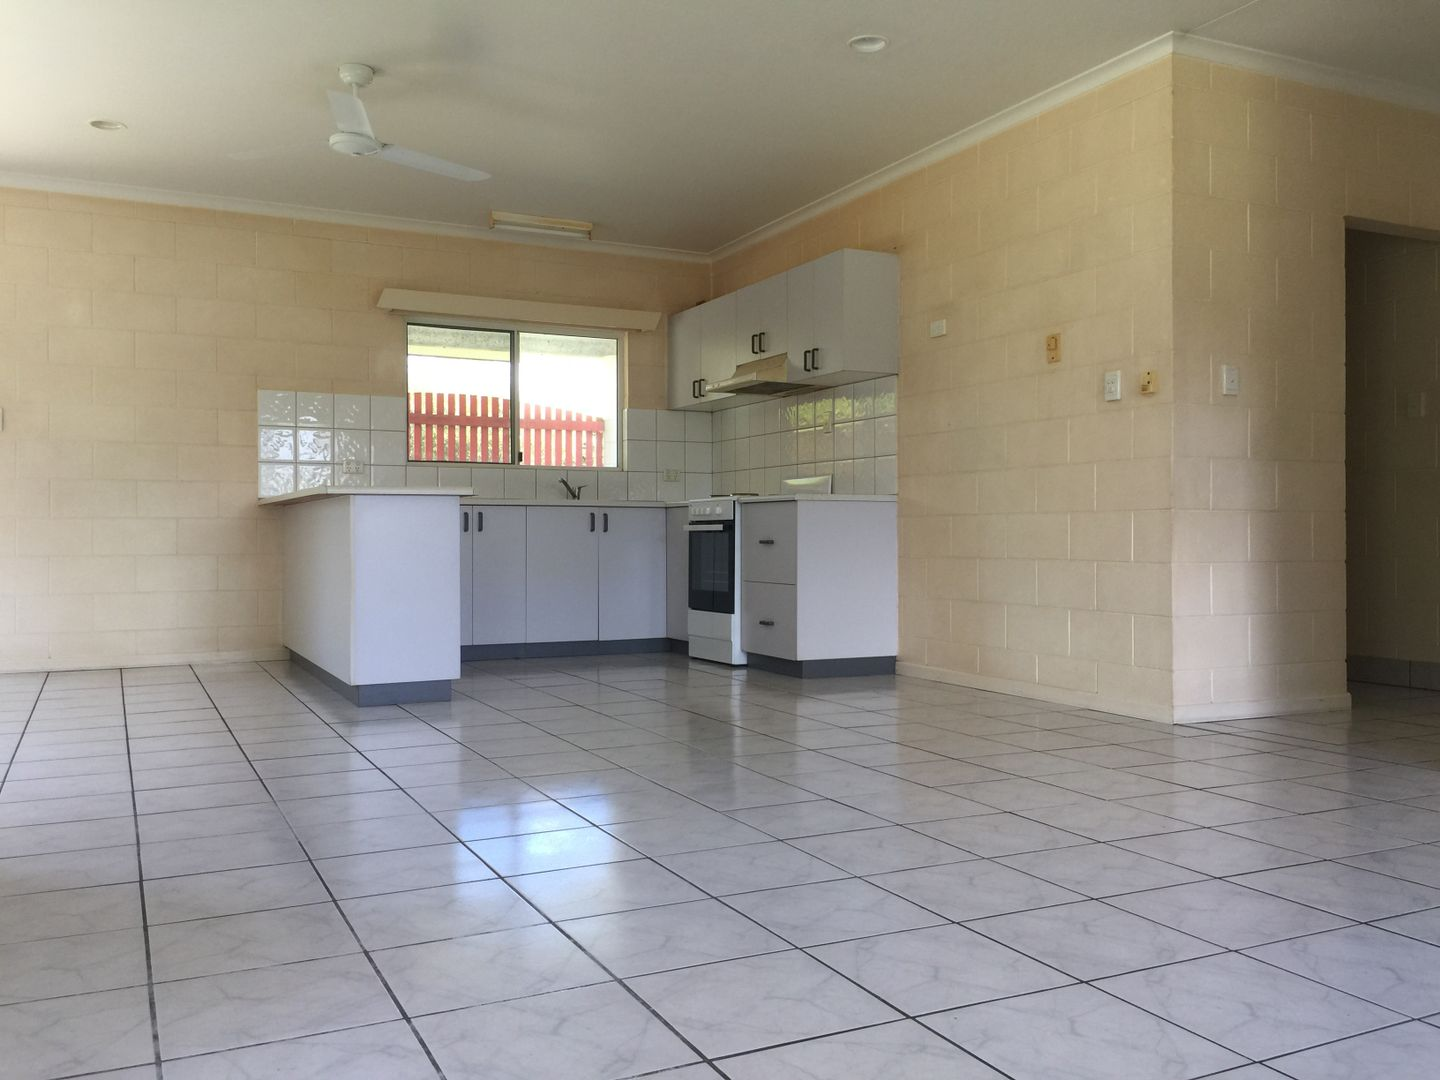 102 Tully Heads Rd, Tully Heads QLD 4854, Image 1